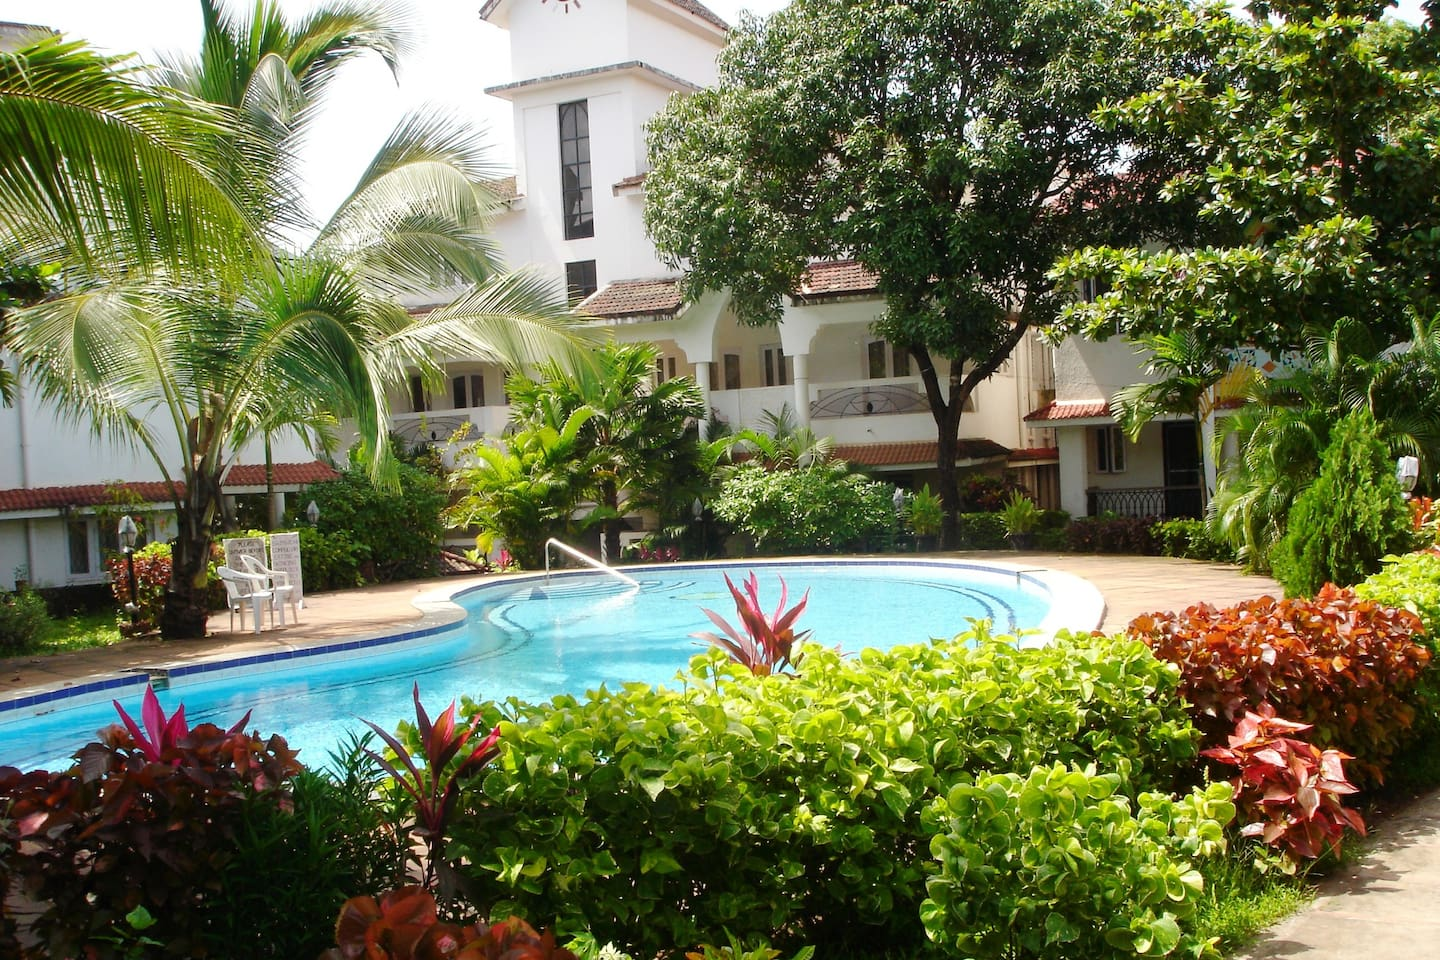 Beautiful 1 bedroom apt. in a gated complex